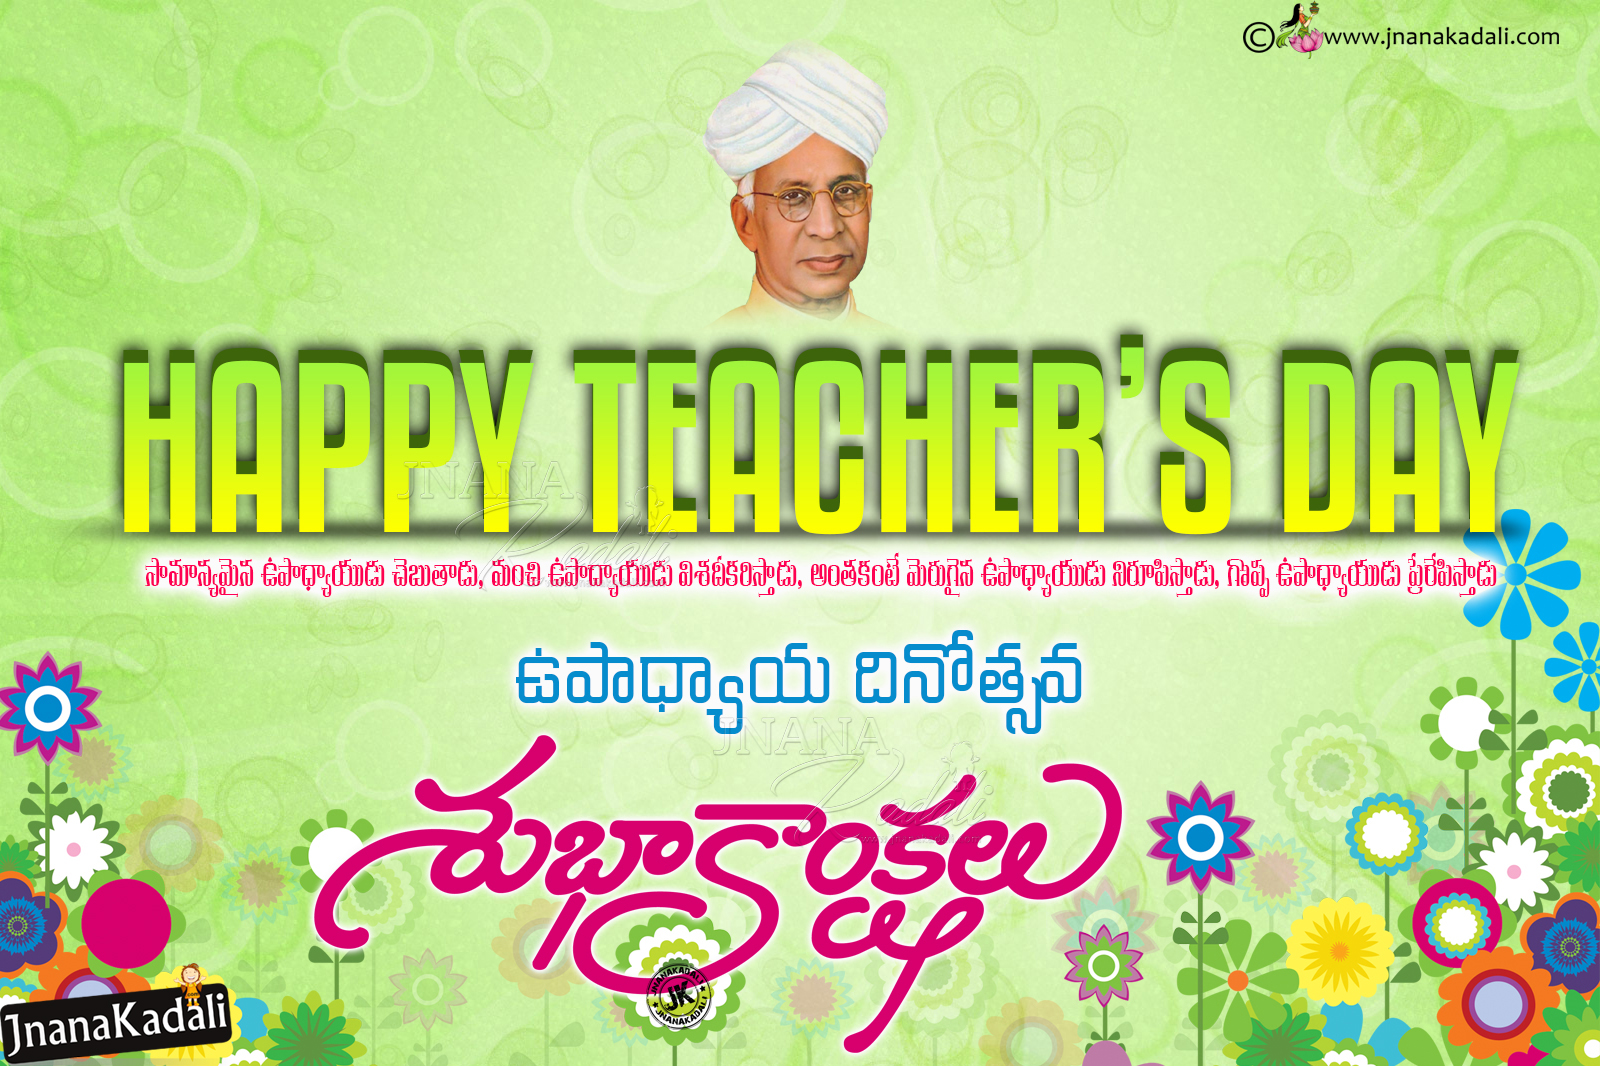 tamil translation teachers day Public holidays in tamil nadu in 2018 upcoming public holidays in tamil nadu deepavali  only the secular holidays of republic day, independence day and mahatma gandhi's birthday are observed nationally  translate this page about us.